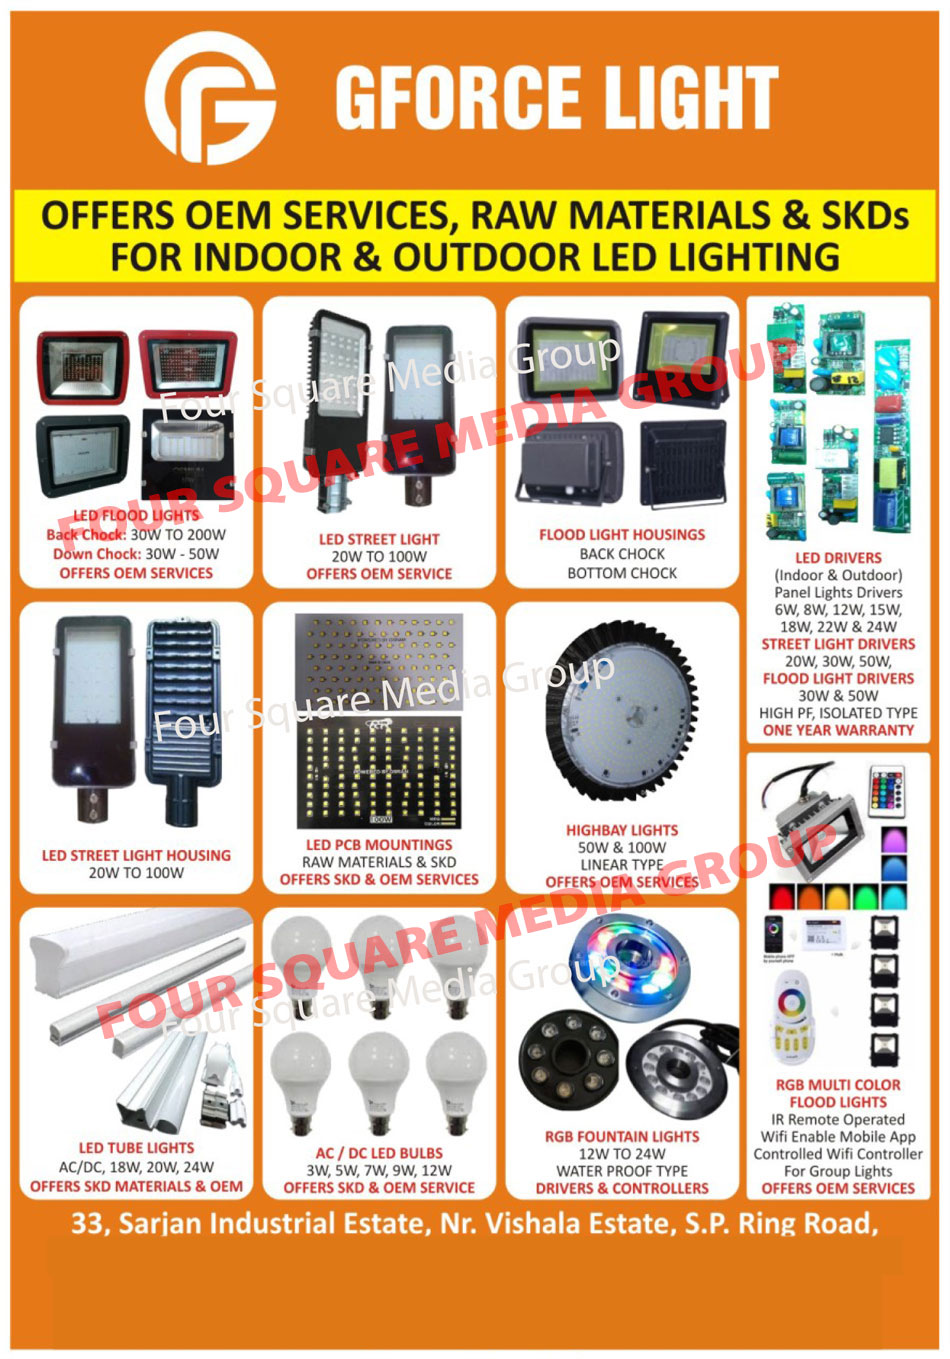 Led Lights, Solar Lights, Panel Lights, Led Drivers, Led Driver Raw Materials, PCB Assemblies Job Works, Printed Circuit Board Assemblies Job Works, Industrial Automation, SMD Assemblies Job Works, AC Led Lights, DC Led Lights, AC DC Led Lights, RGb Fountain Lights, RGB Magic Led Strip Lights, PCB Assembly, SMD Assembly, Fountain Lights, LED Strip Lights, Led Strip Lights, Fountain Lights, Indoor Light SKD Form, Outdoor Light SKD Form, Led Flood Lights, Led Street Lights, Led Flood Light Housings, Led Street Light Housings, Led PCB Mountings, High Bay Lights, Led Tube Lights, AC DC Led Bulbs, RGB Multi Color Flood Lights